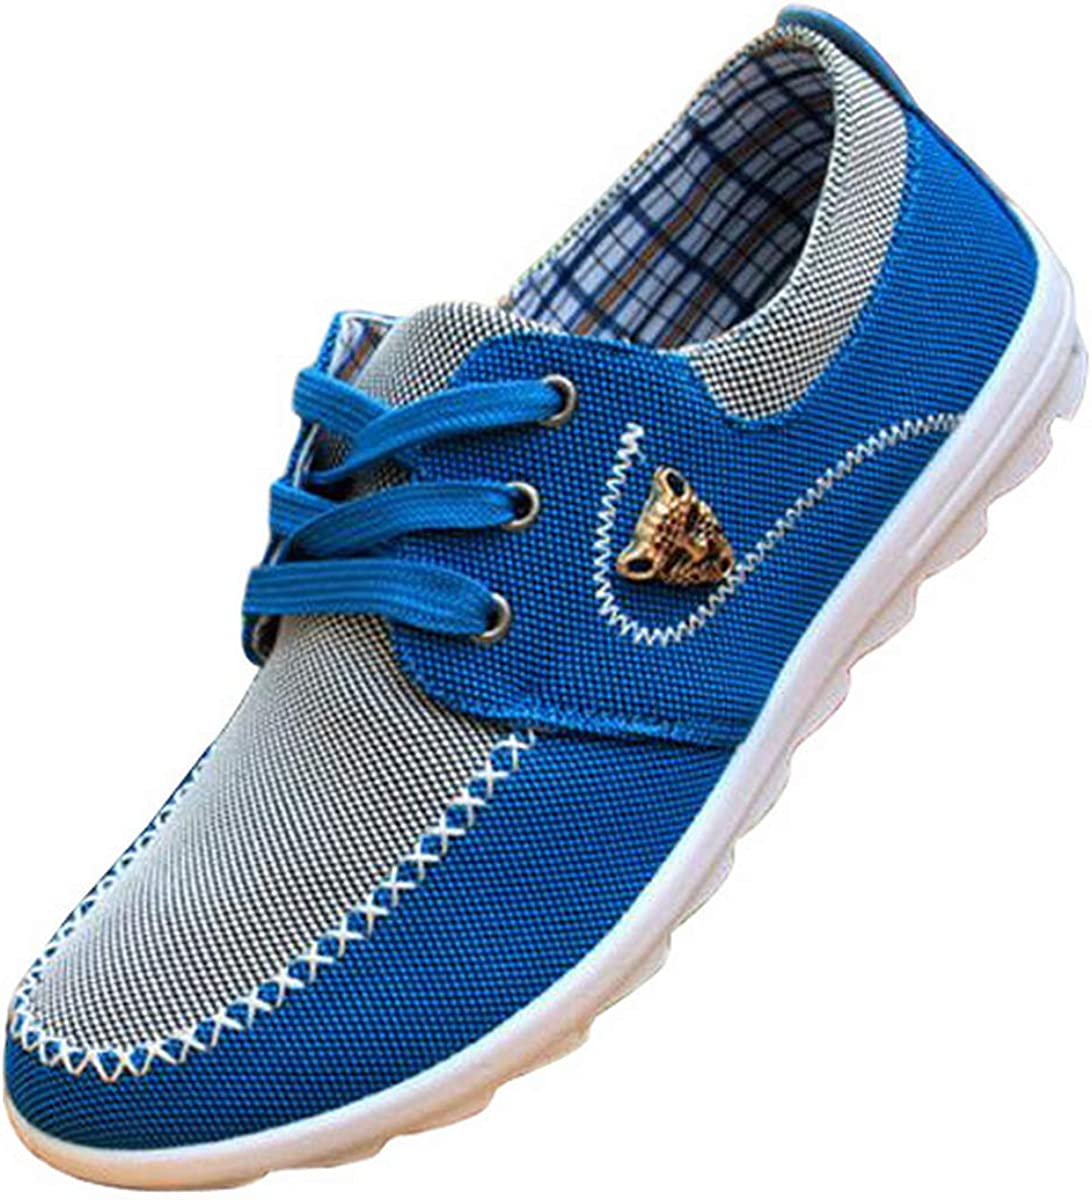 tazimall New Casual Sneakers for Men